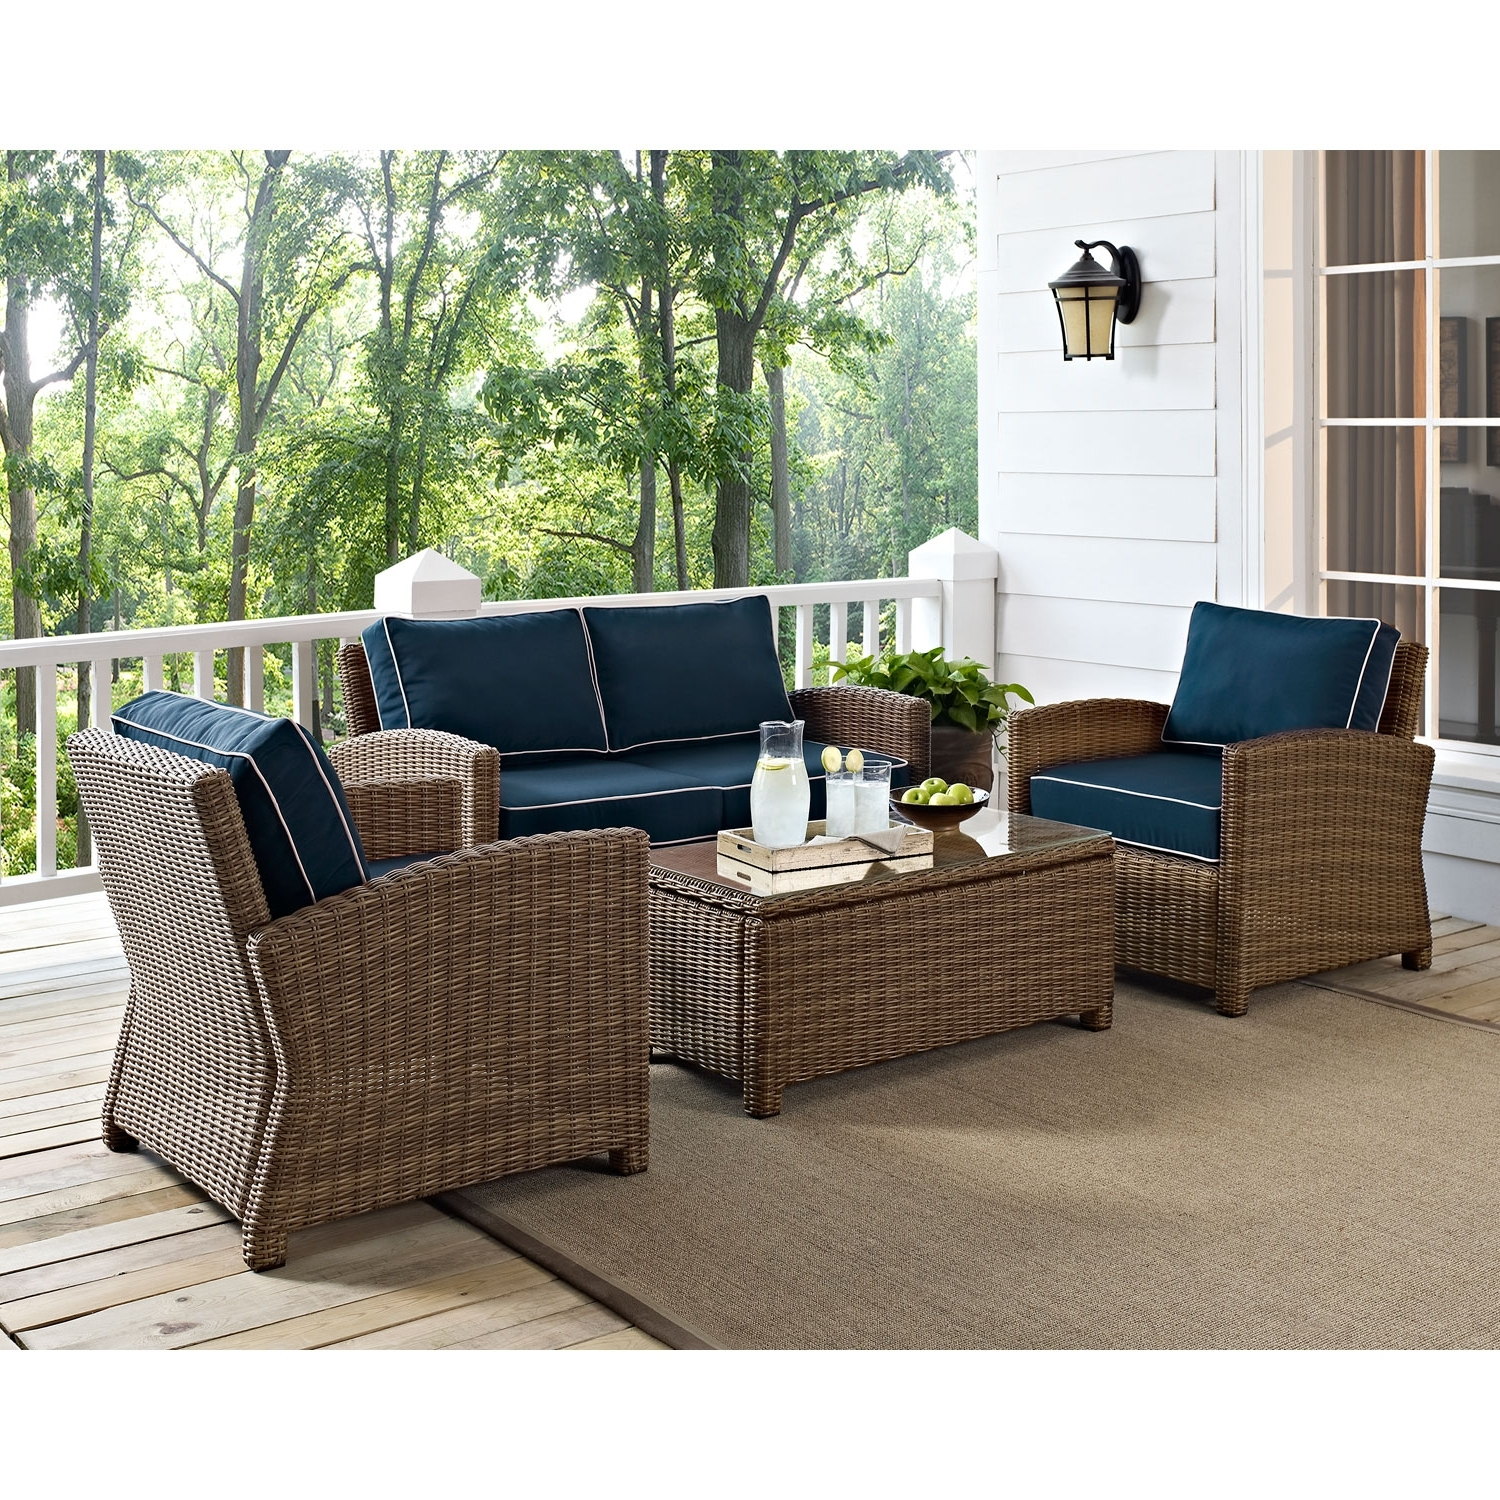 Small Patio Conversation Sets With Regard To Fashionable Patio : Kroger Patio Furniture Kroger Outdoor Furniture (View 18 of 20)